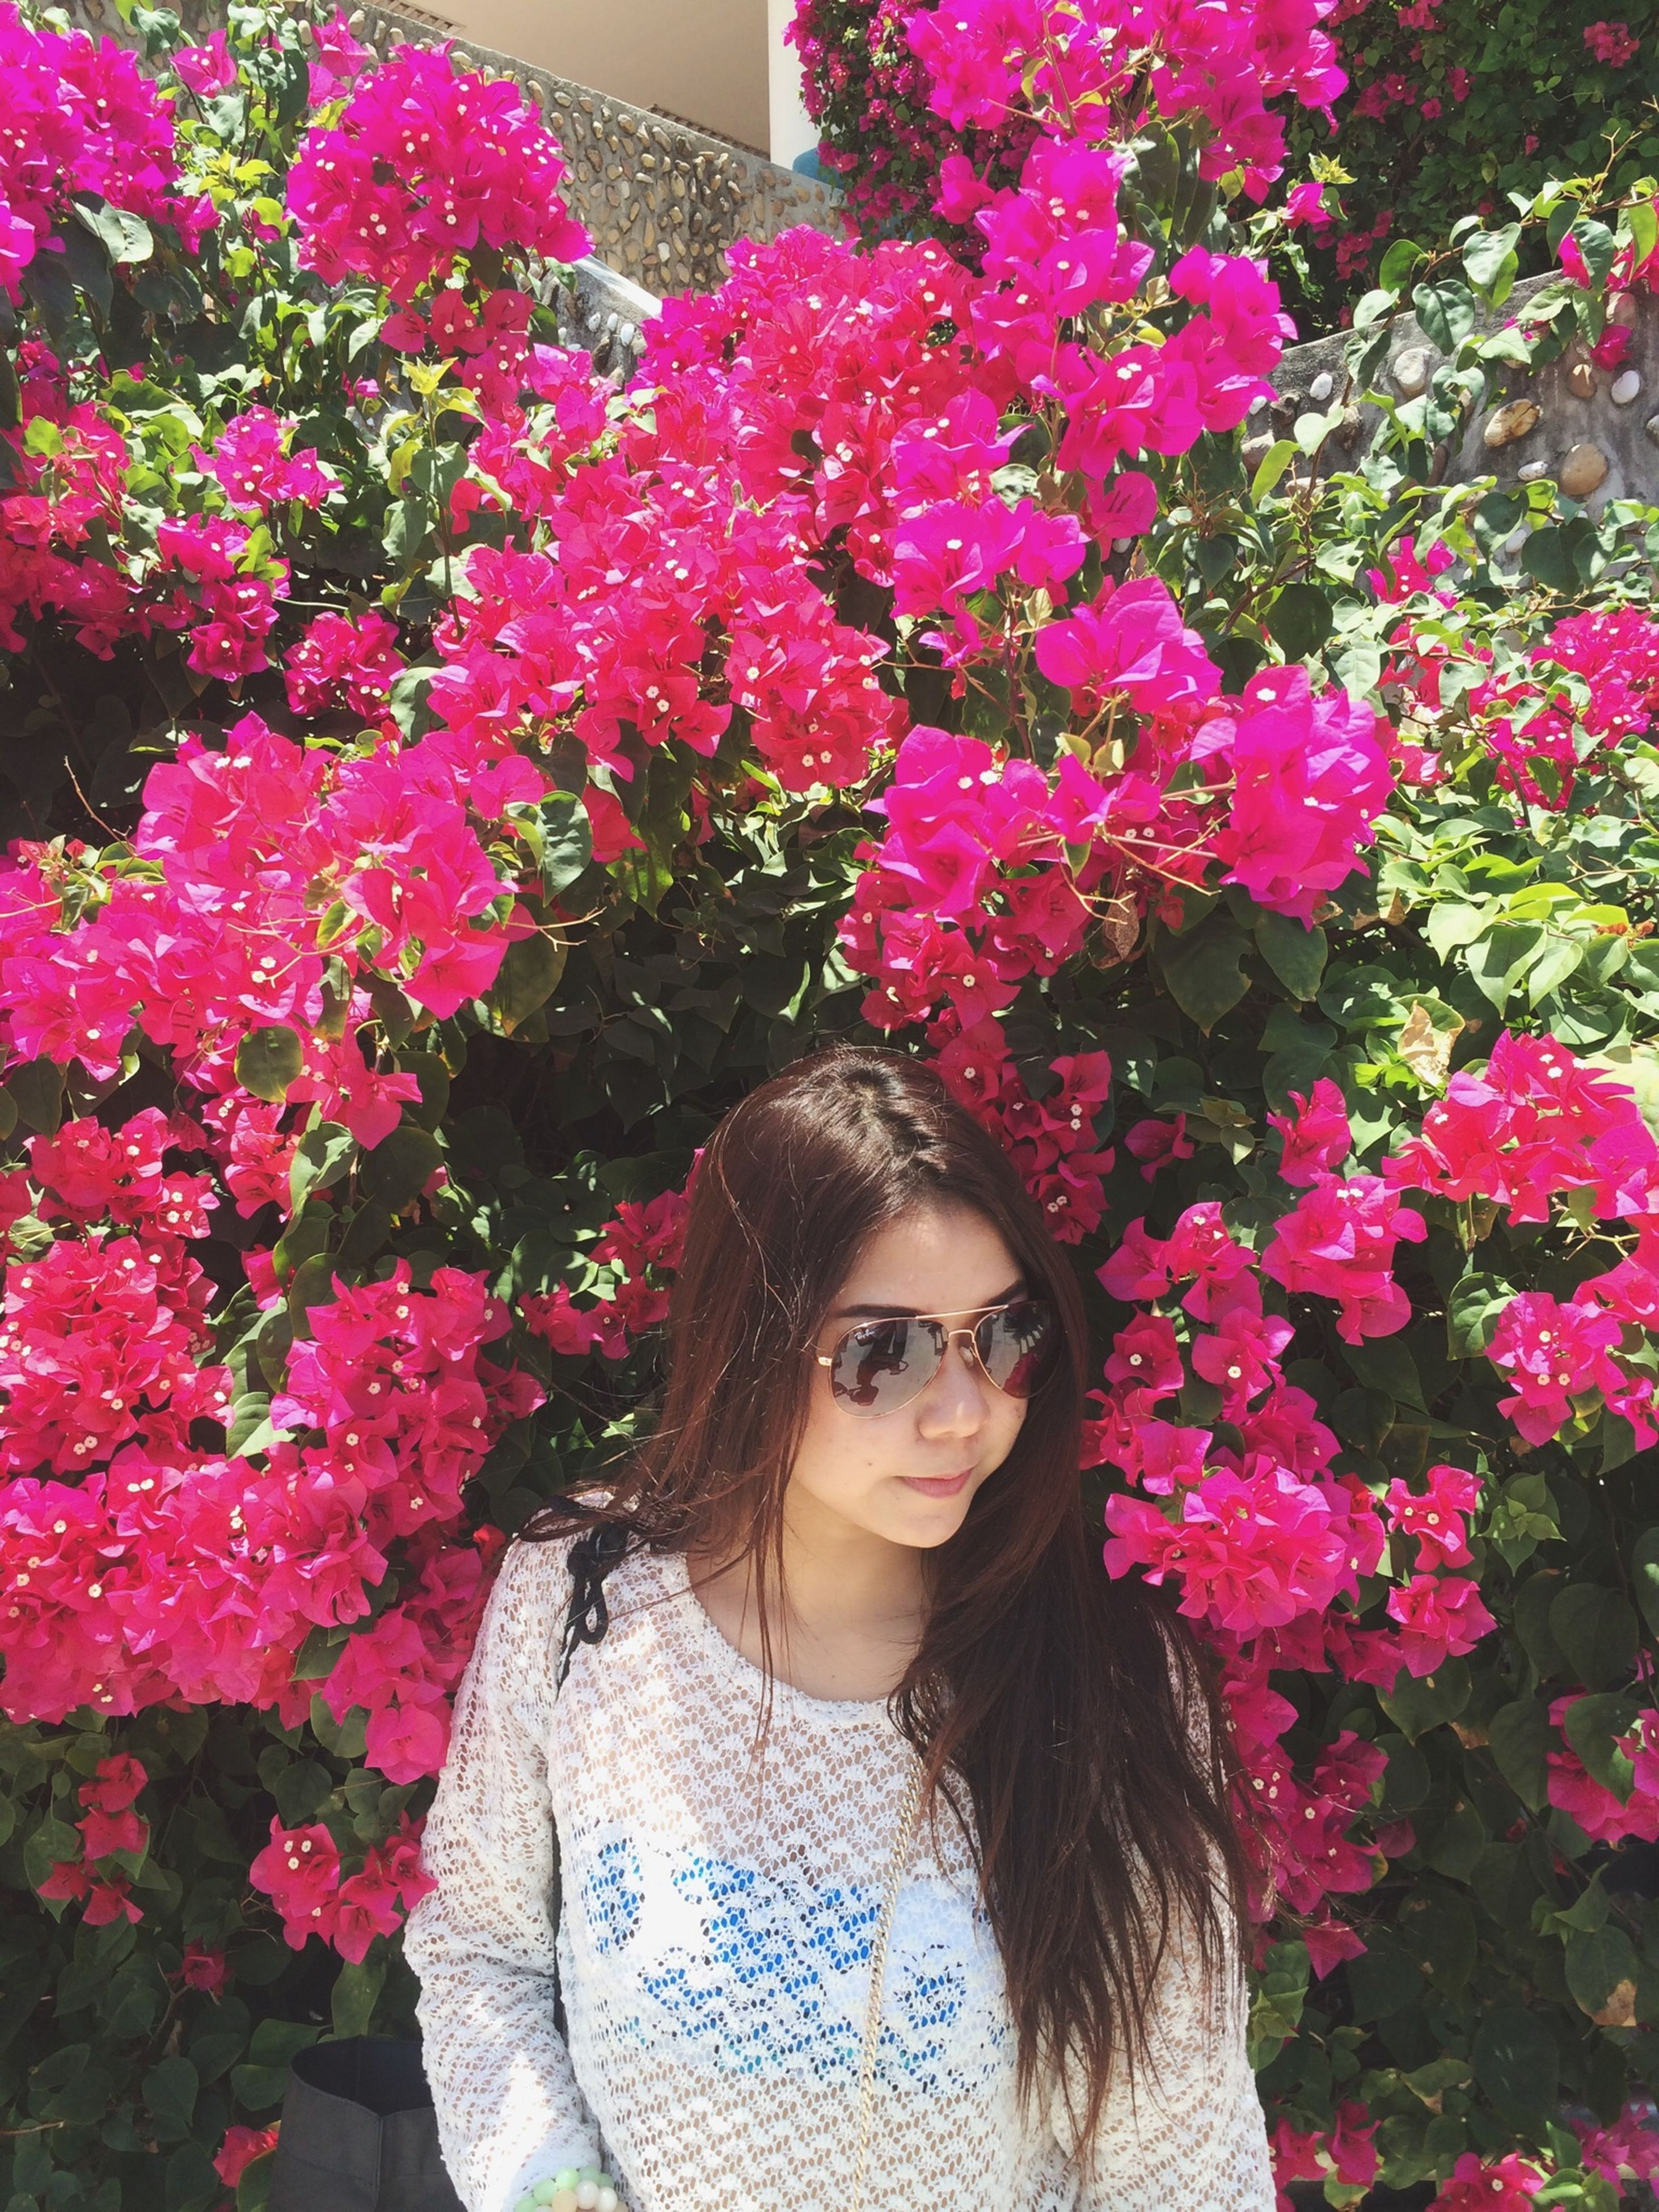 flower, young adult, person, young women, looking at camera, portrait, lifestyles, front view, pink color, smiling, long hair, leisure activity, casual clothing, tree, park - man made space, headshot, growth